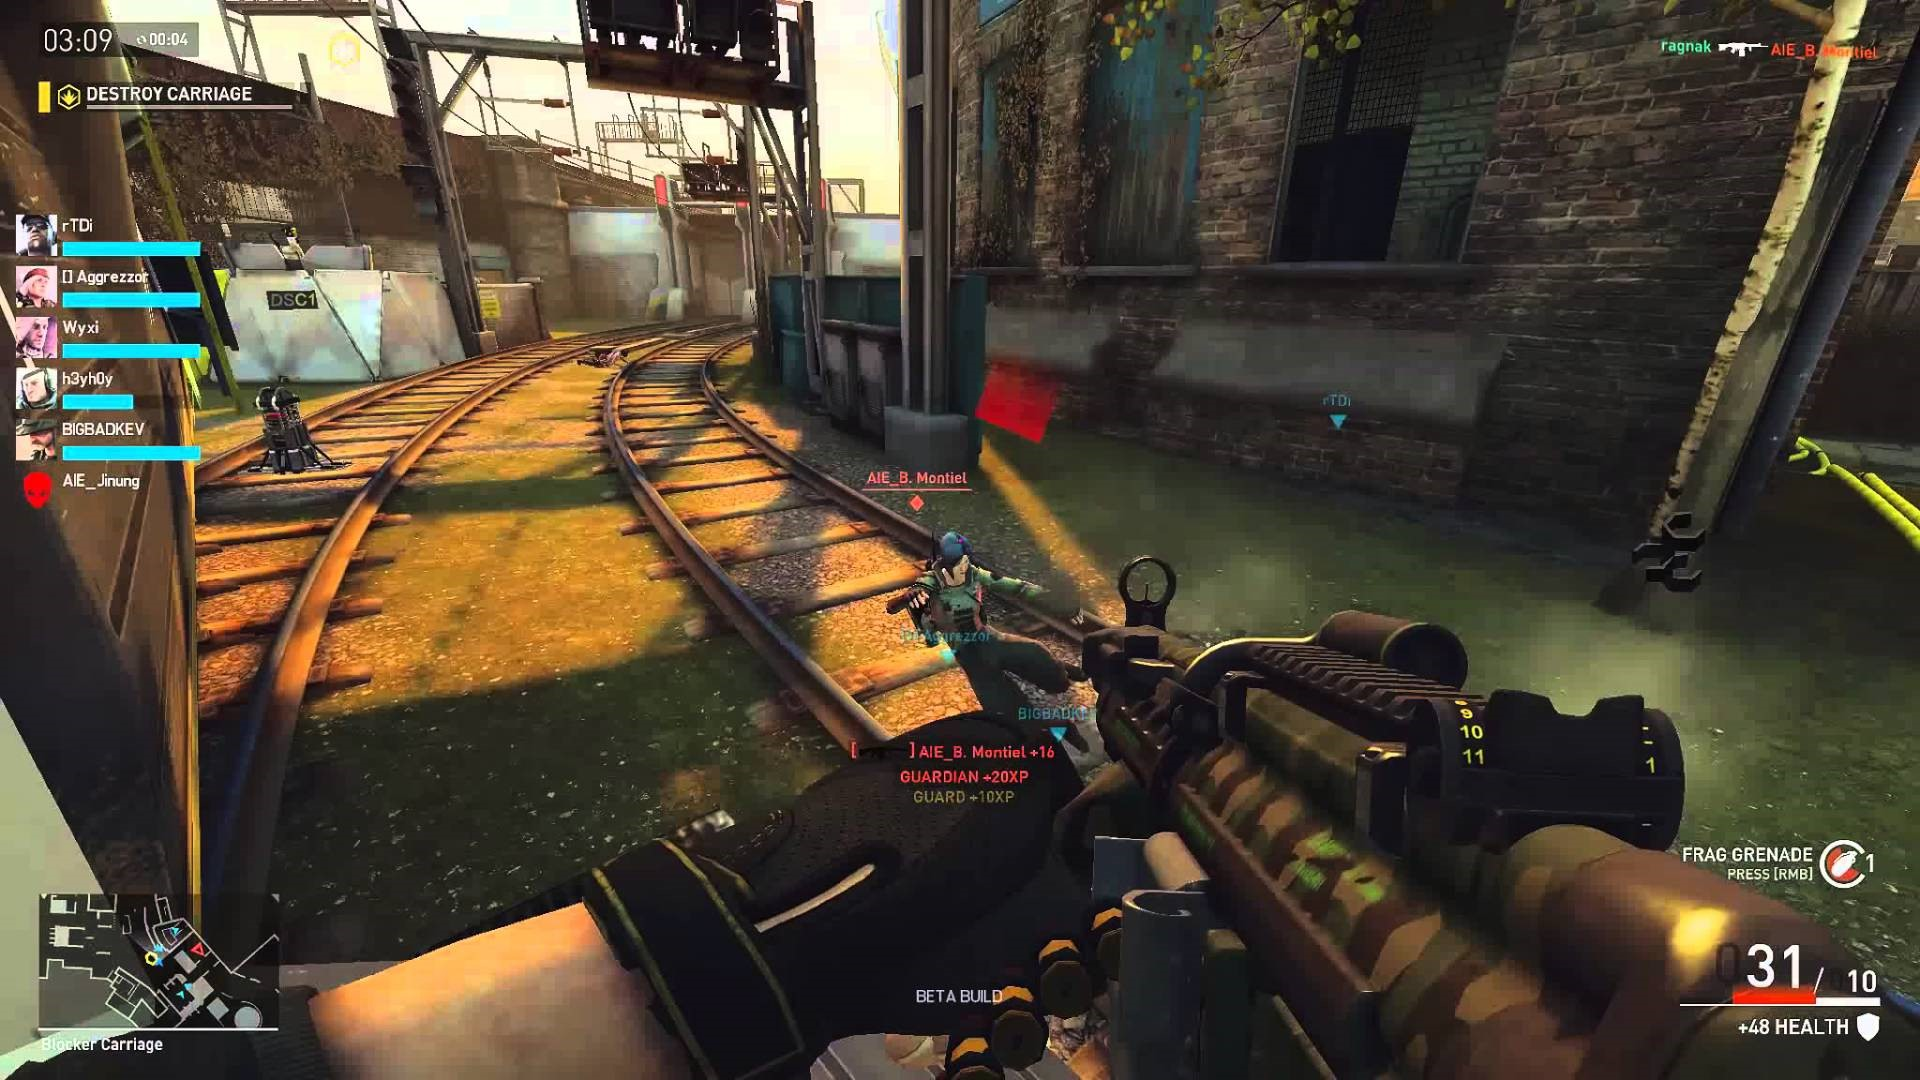 free to play ftp action mmo rpg shooter fps fair best new games to play top 21 2017 Dirty Bomb gameplay